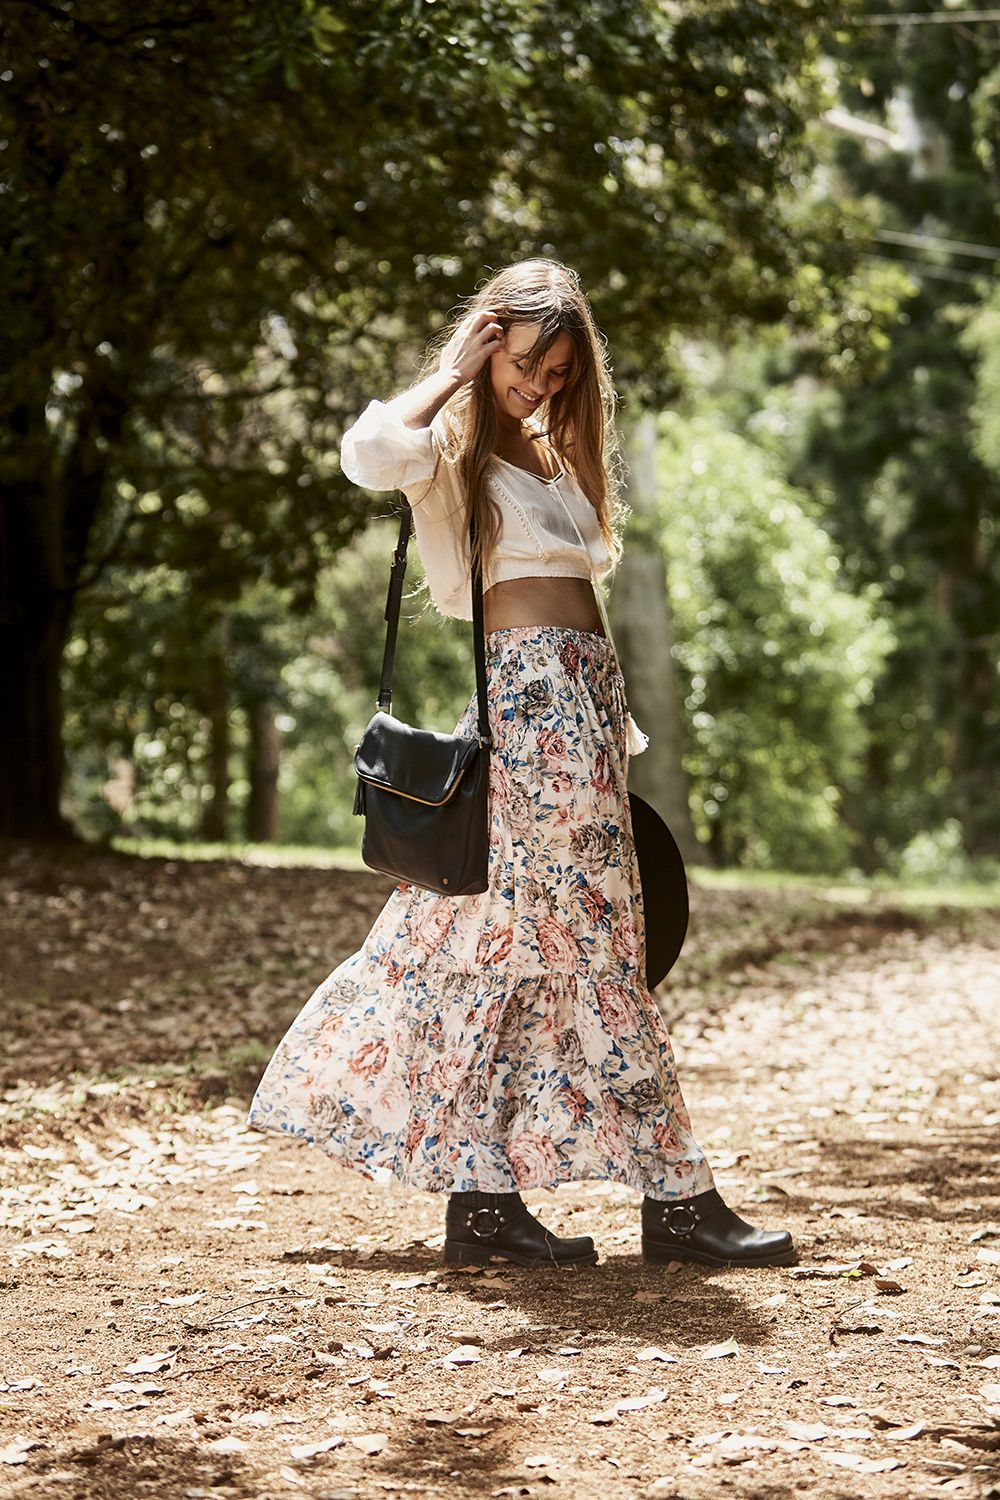 It's all in the bag - Christina Macpherson shot by Tavoni for Stitch & Hide in Byron Bay.